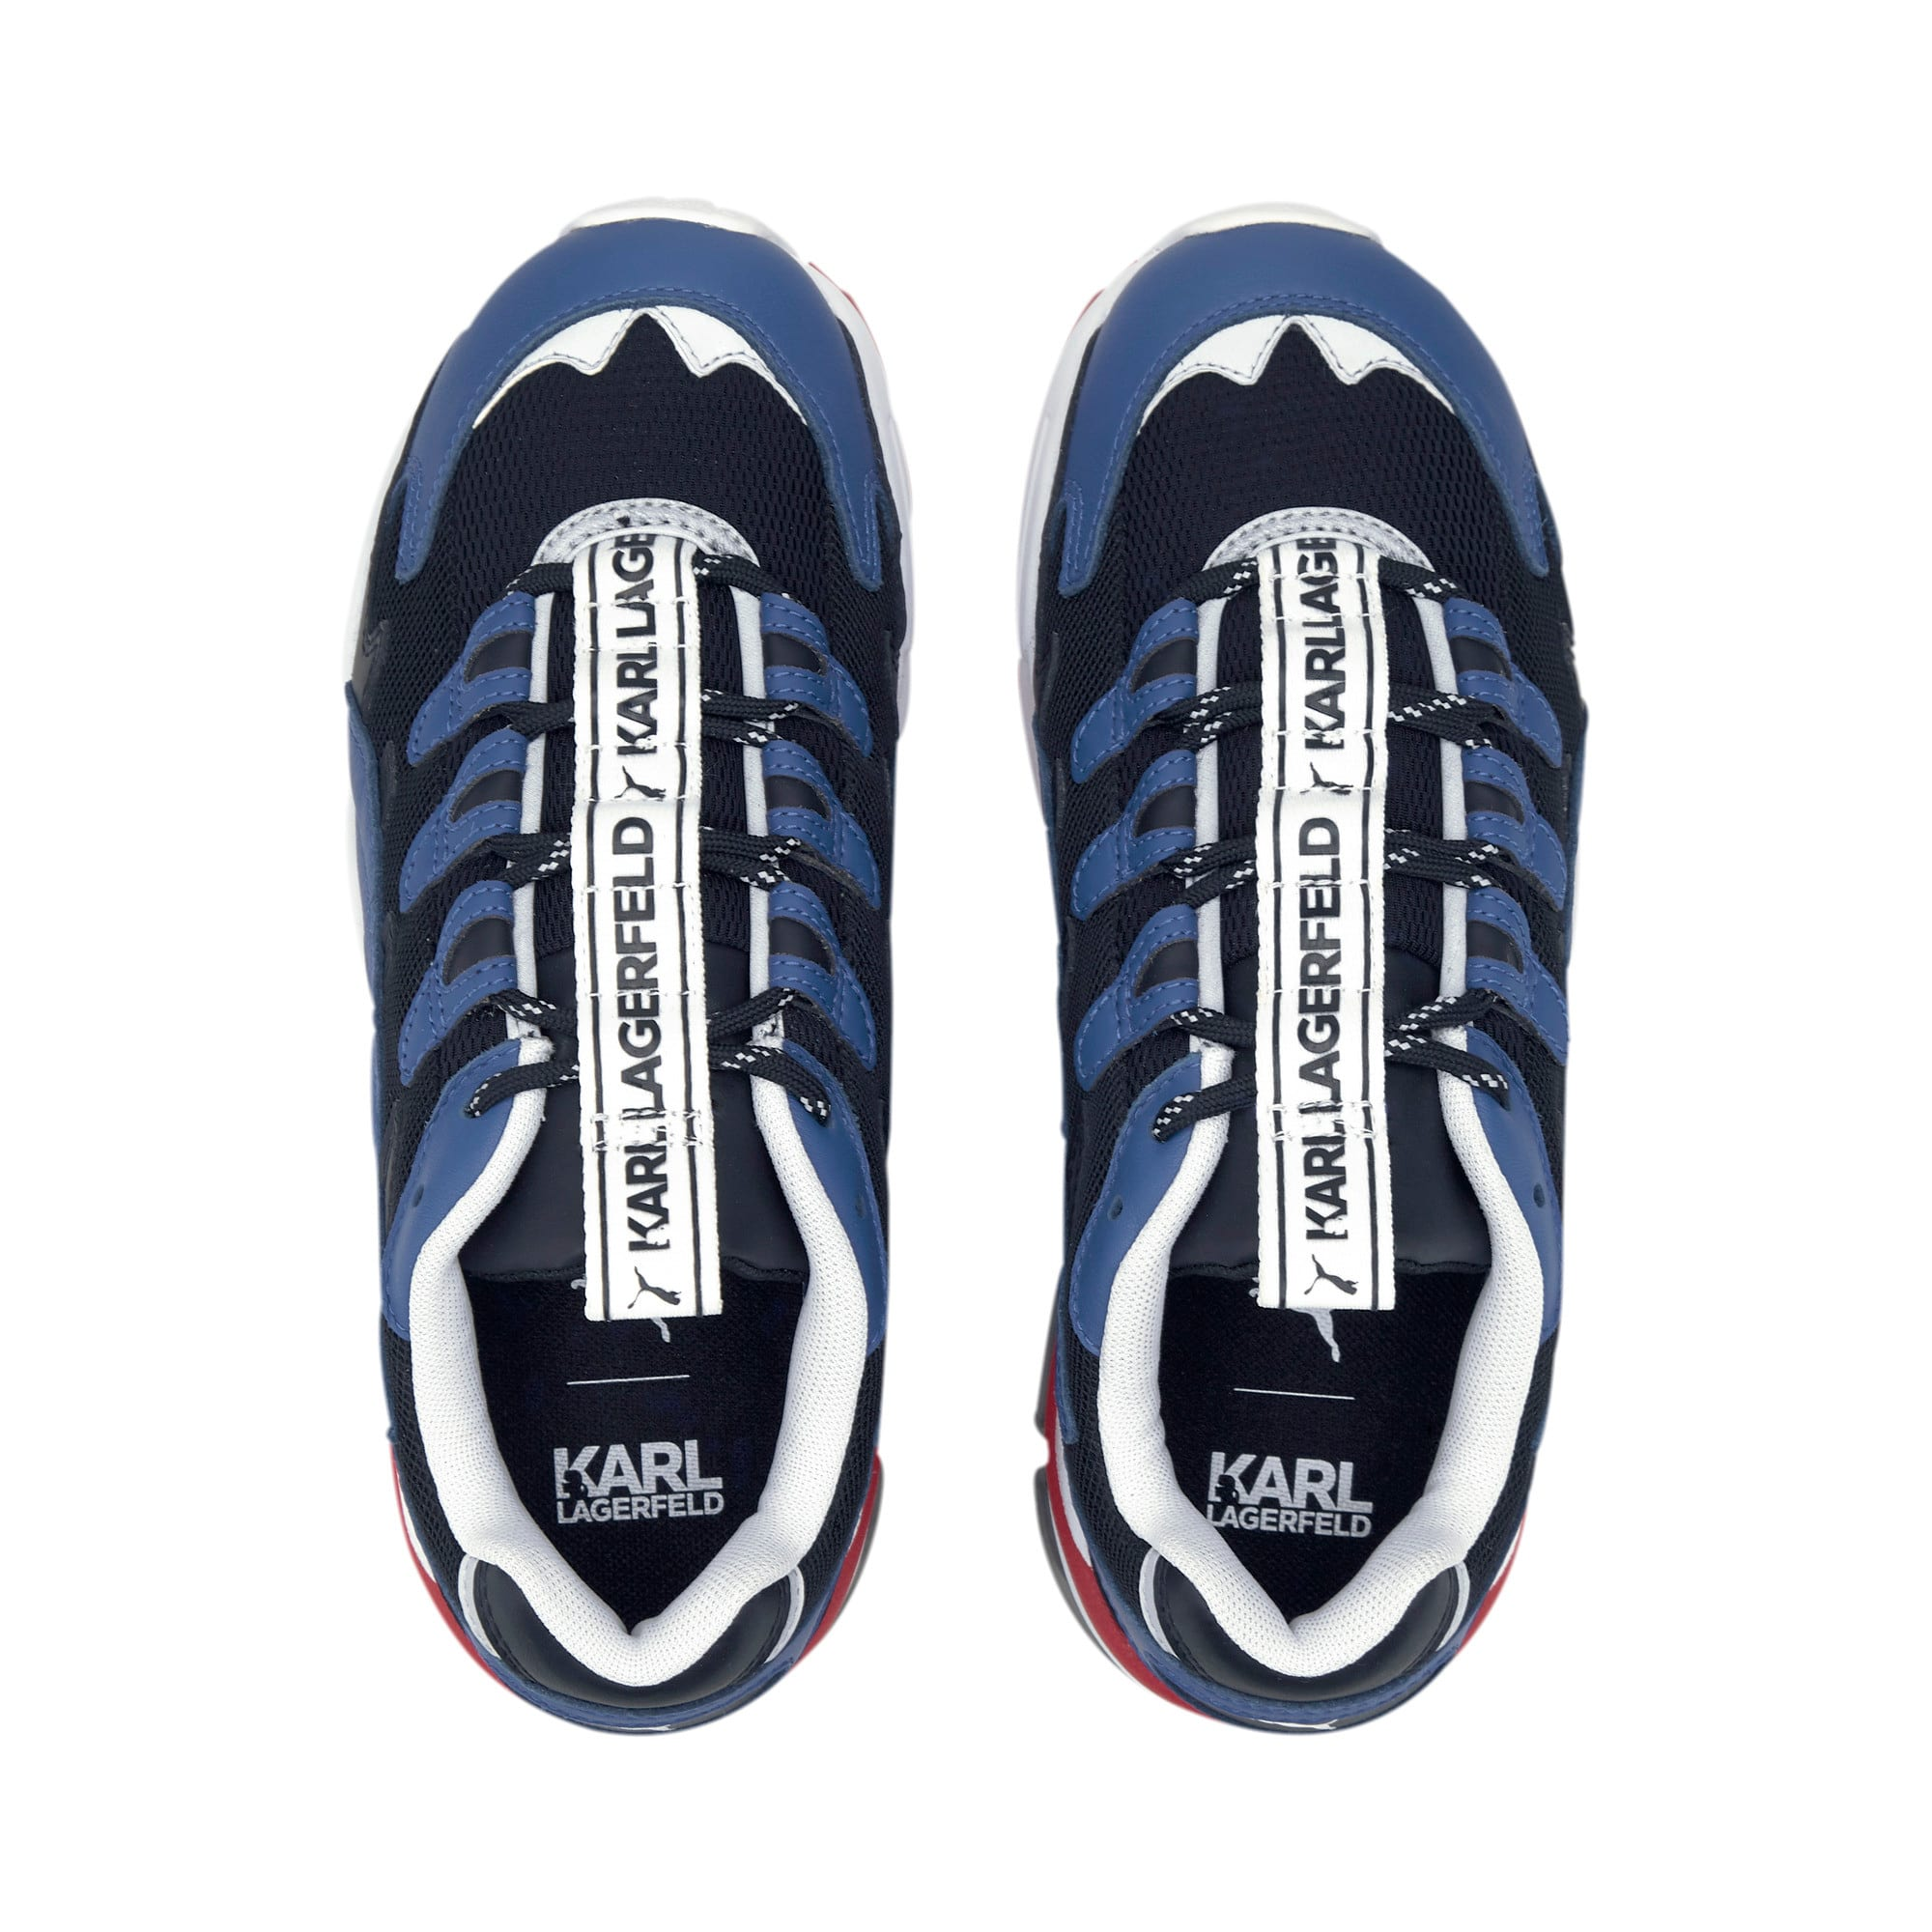 Thumbnail 7 of PUMA x KARL LAGERFELD CELL Alien Trainers, Puma Black-TRUE BLUE, medium